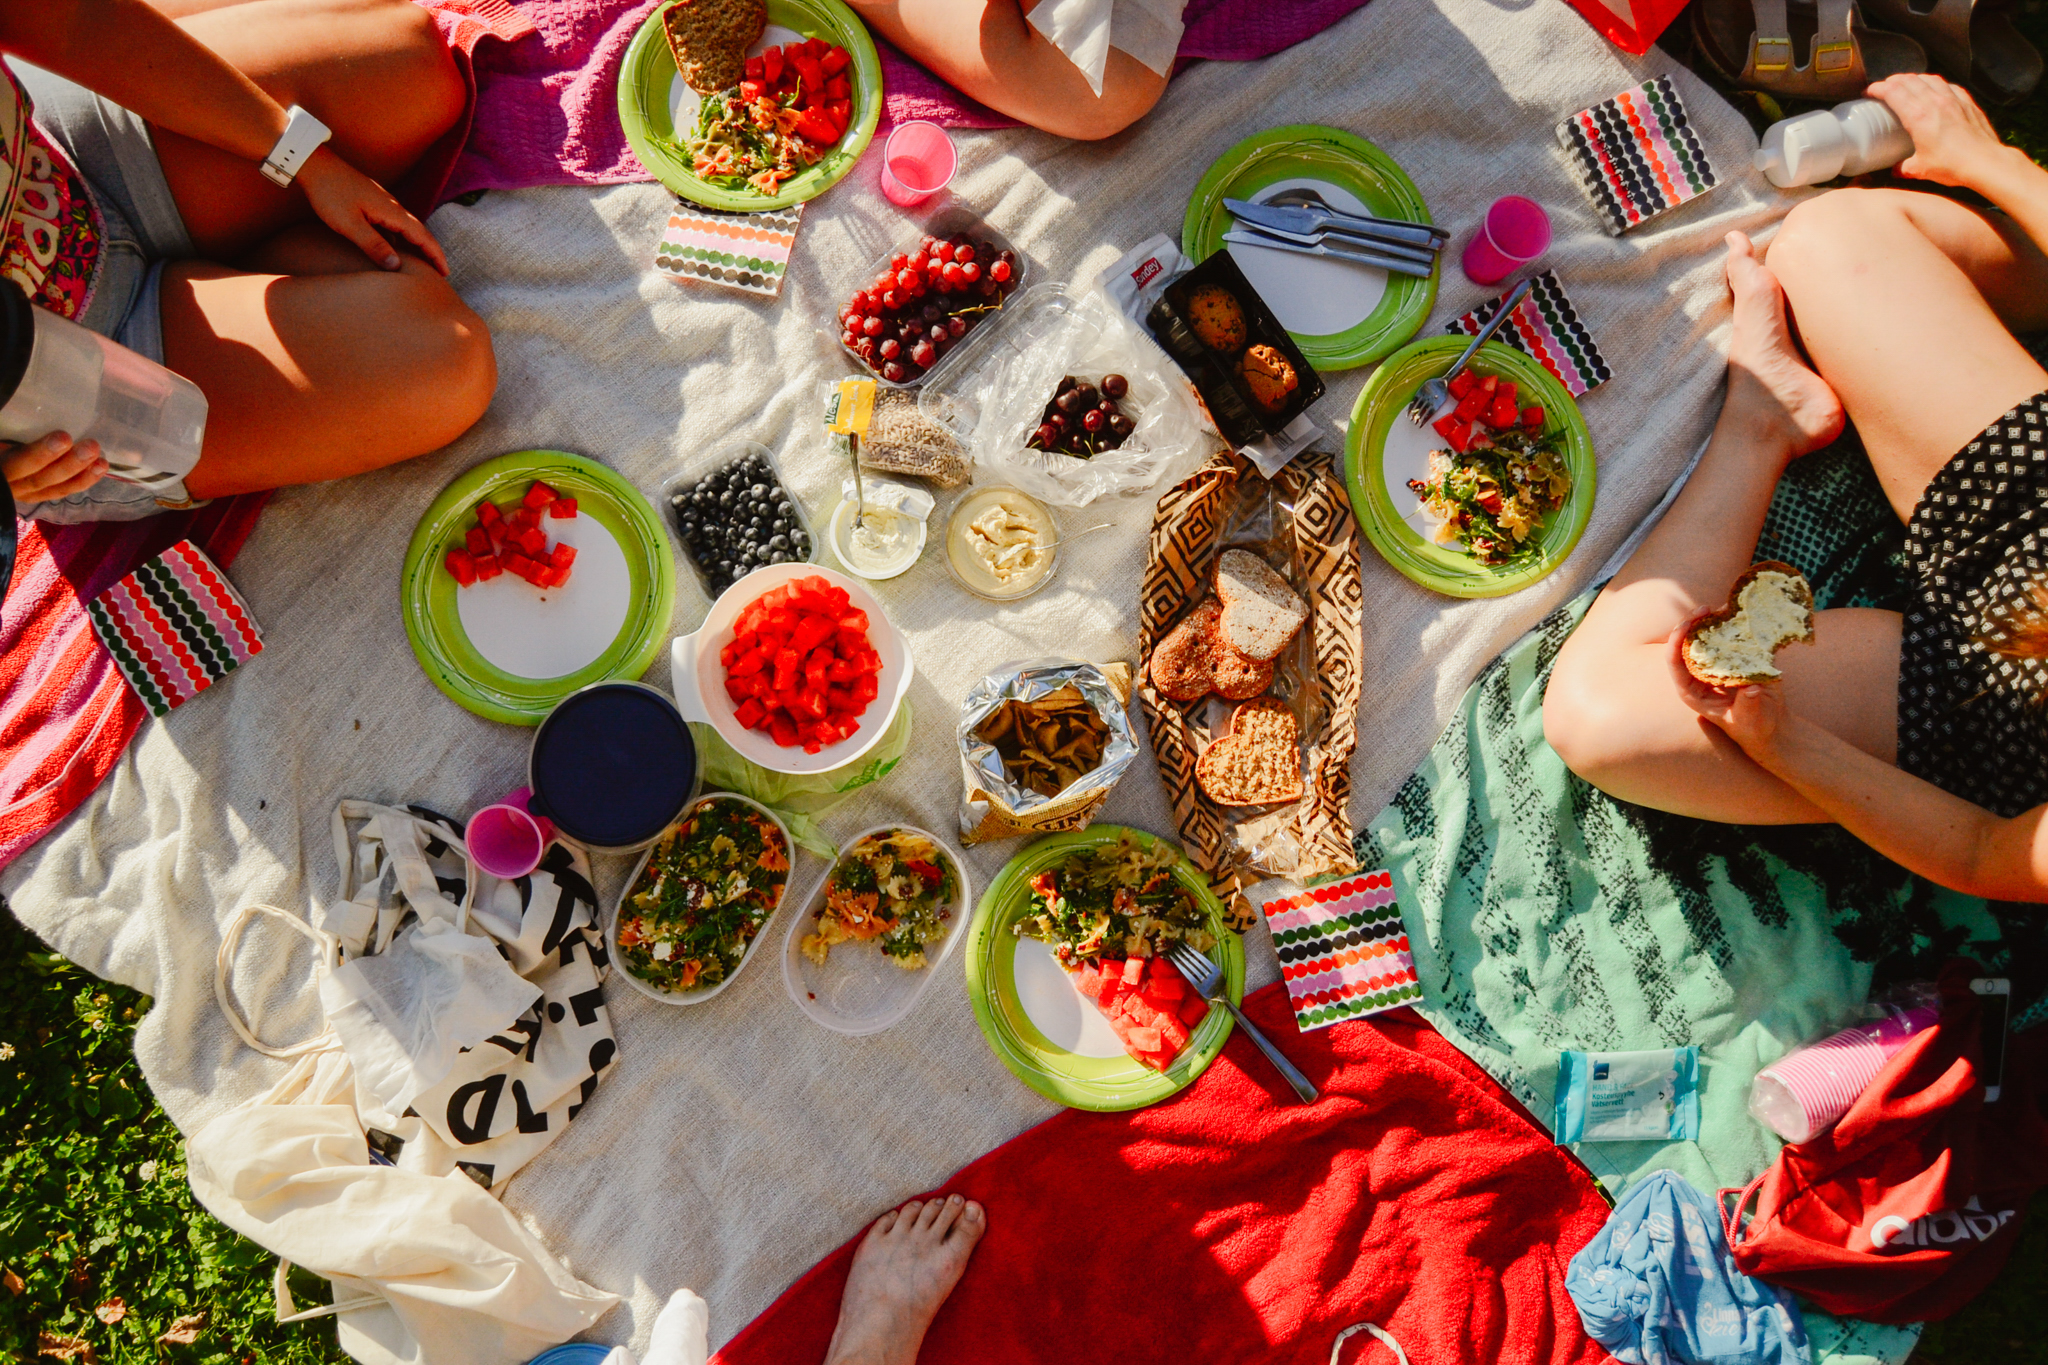 Finnish summer ways to connect with nature and yourself by having outdoor picnic with your friends